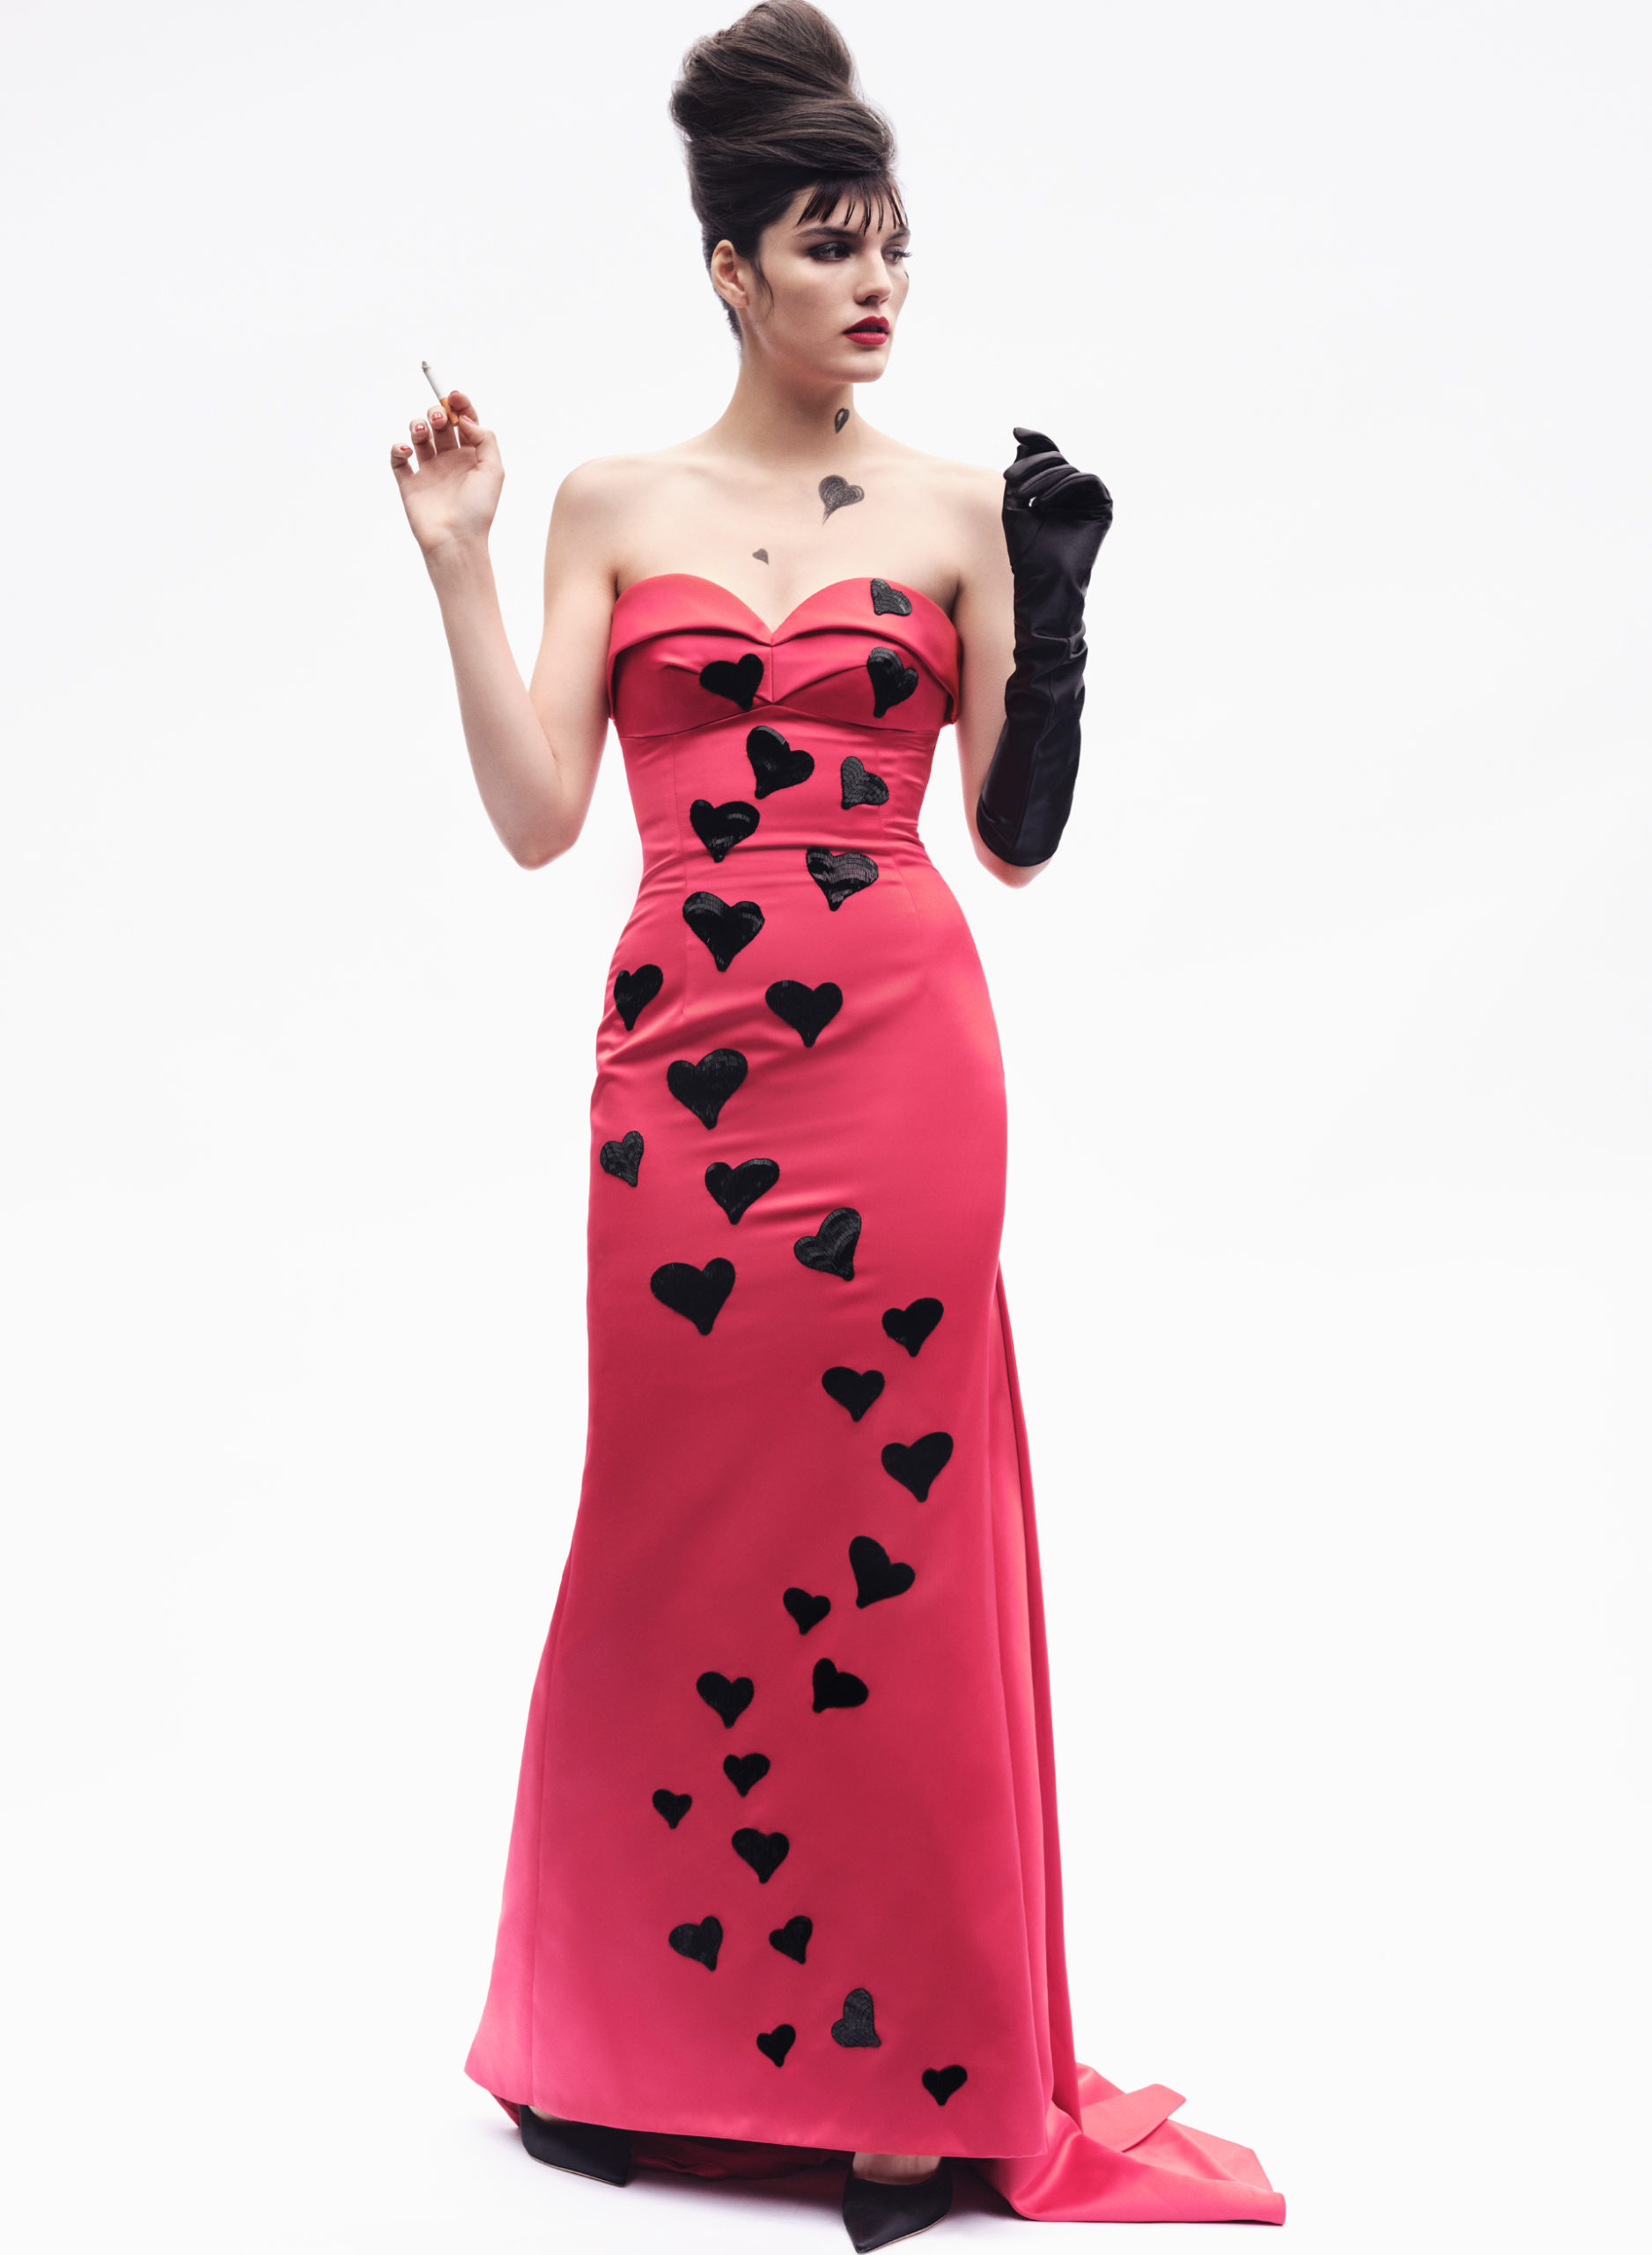 Dress <strong>Moschino</strong>, Glove <strong>Agnelle</strong>, Shoes <strong>Jimmy Choo</strong>, On lips <strong>MAC</strong> Powder Kiss Lipstick Lasting Passion